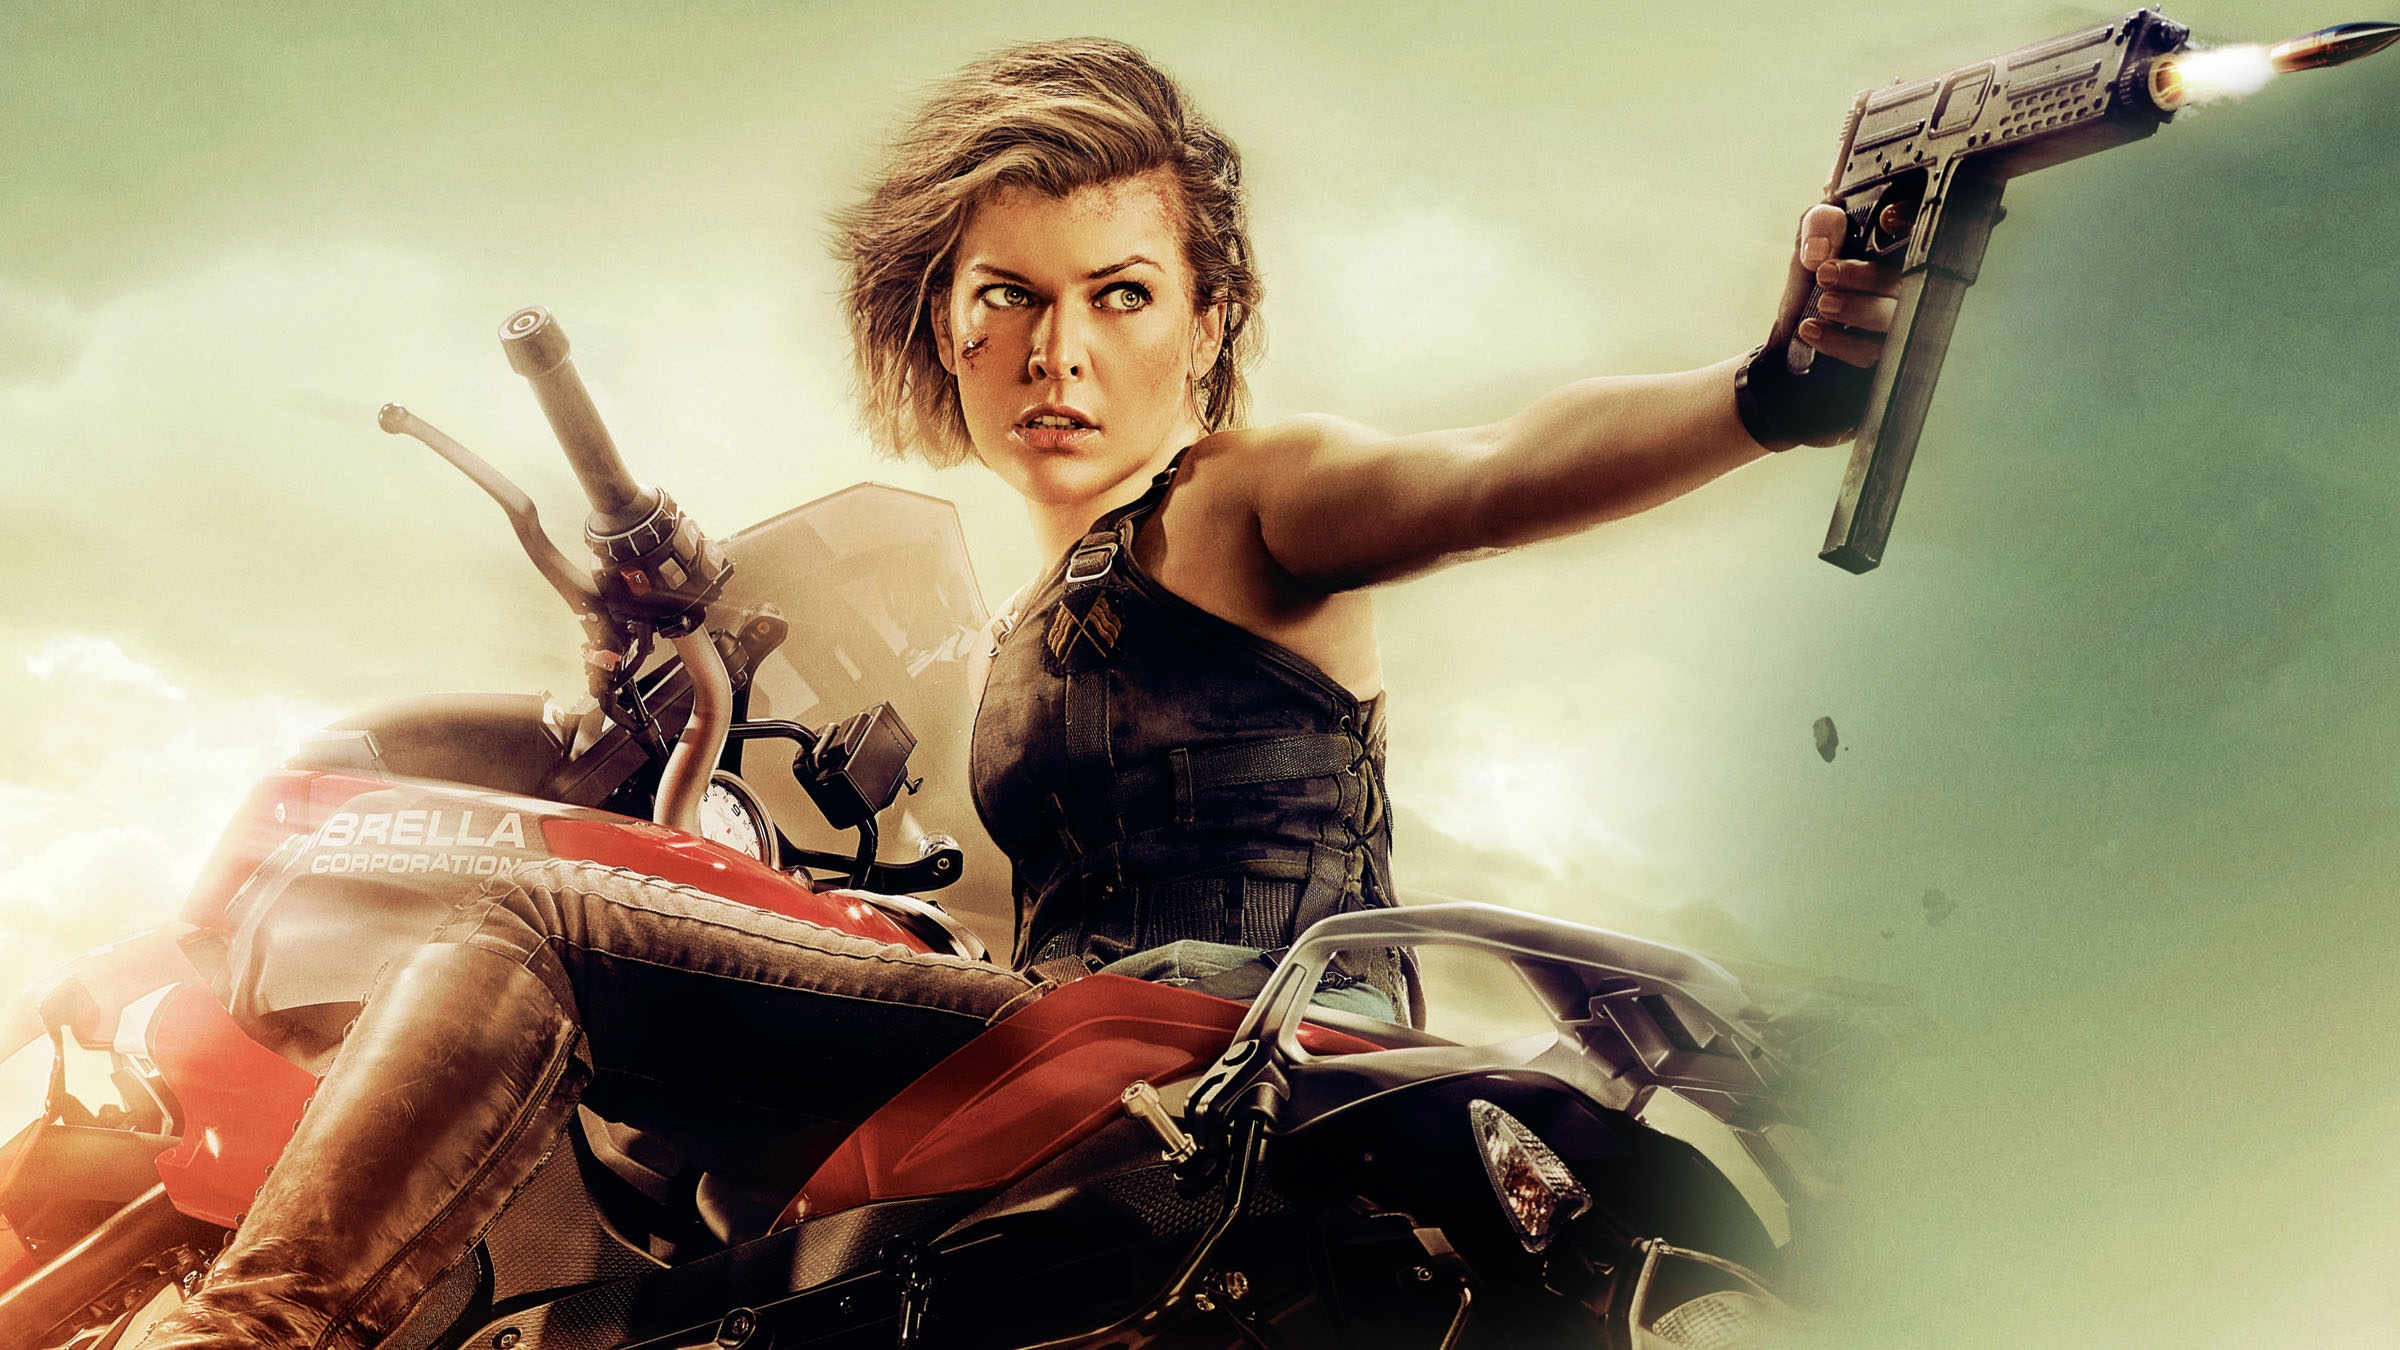 New Clips Of Resident Evil The Final Chapter Show Alice In Action